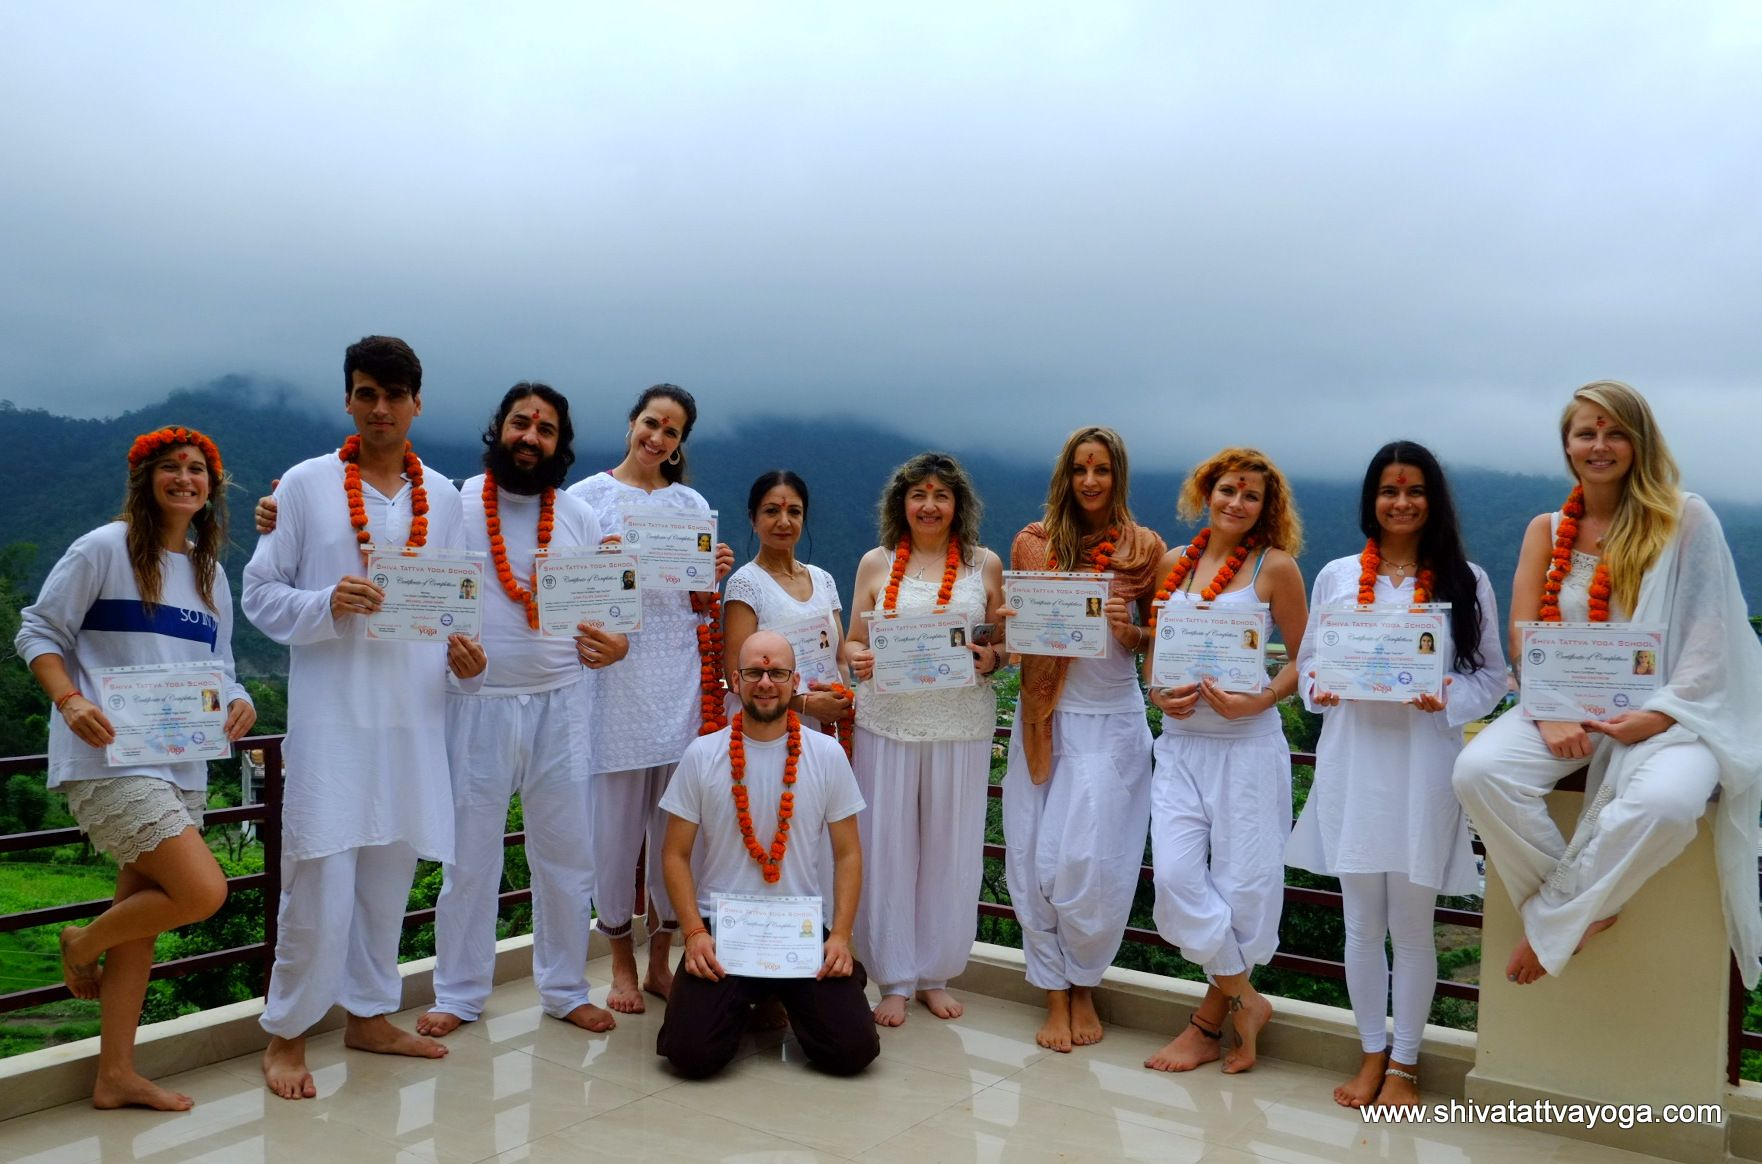 Best Vinyasa yoga Teacher Training Course in Rishikesh India